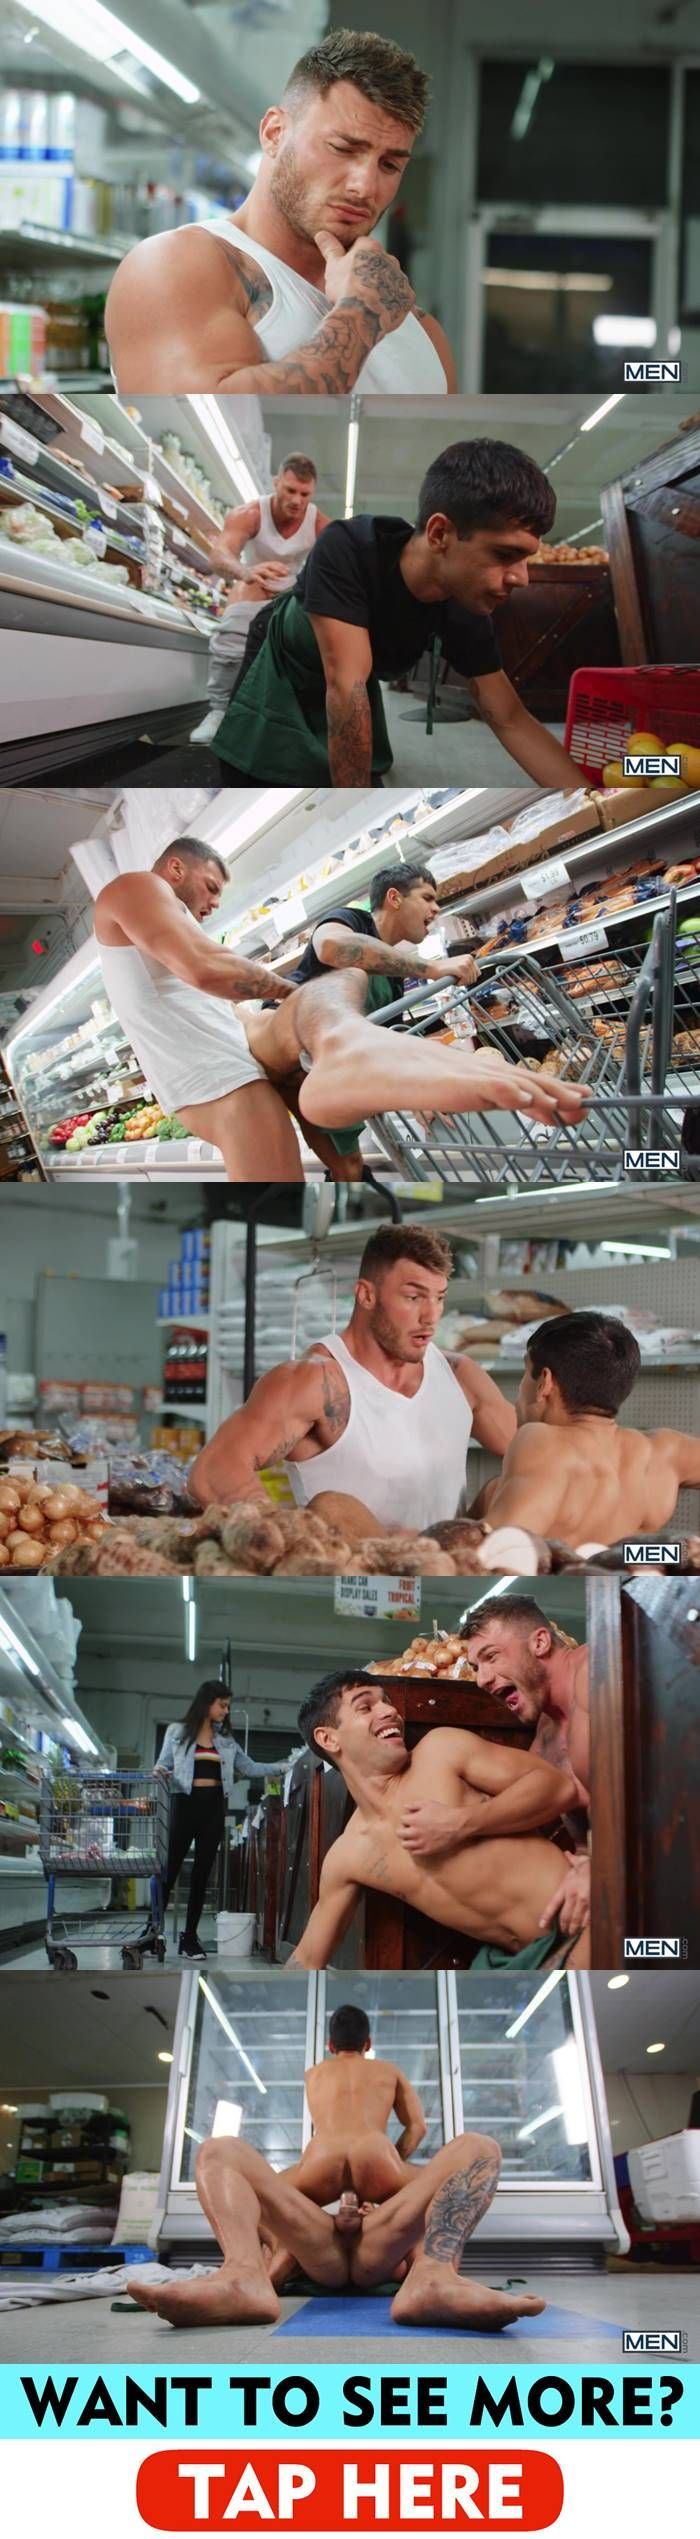 Clean-Up on Aisle 69: William Seed & Ty Mitchell